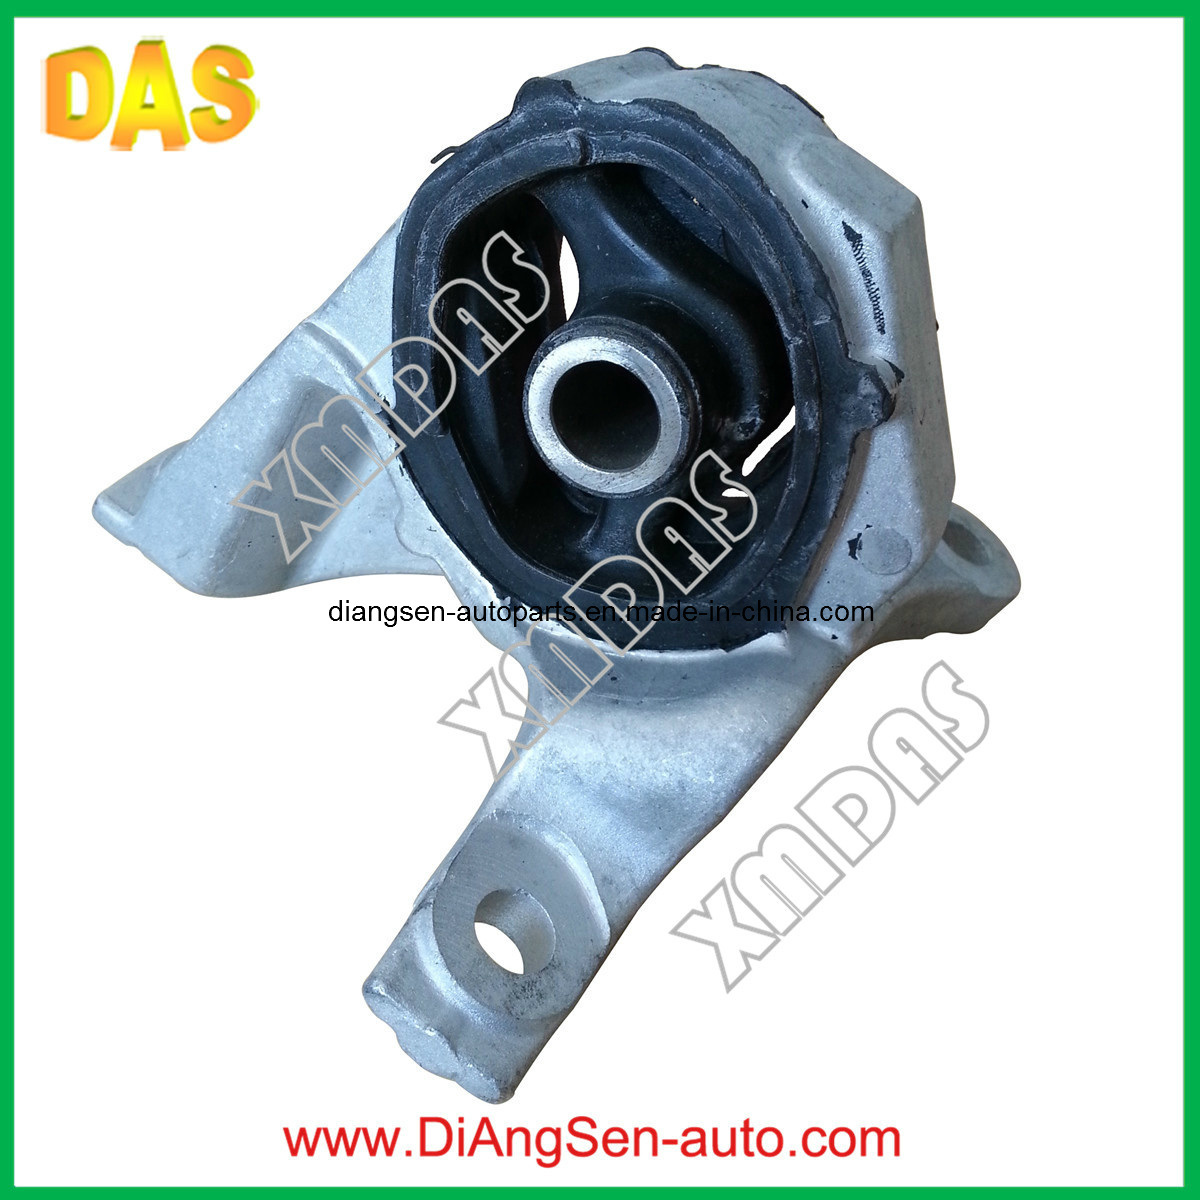 China Rubber Parts Car Engine Mounting For Honda Civic 50830 Svb 2004 Crv Discount Factory Oem And A01 Rubbber